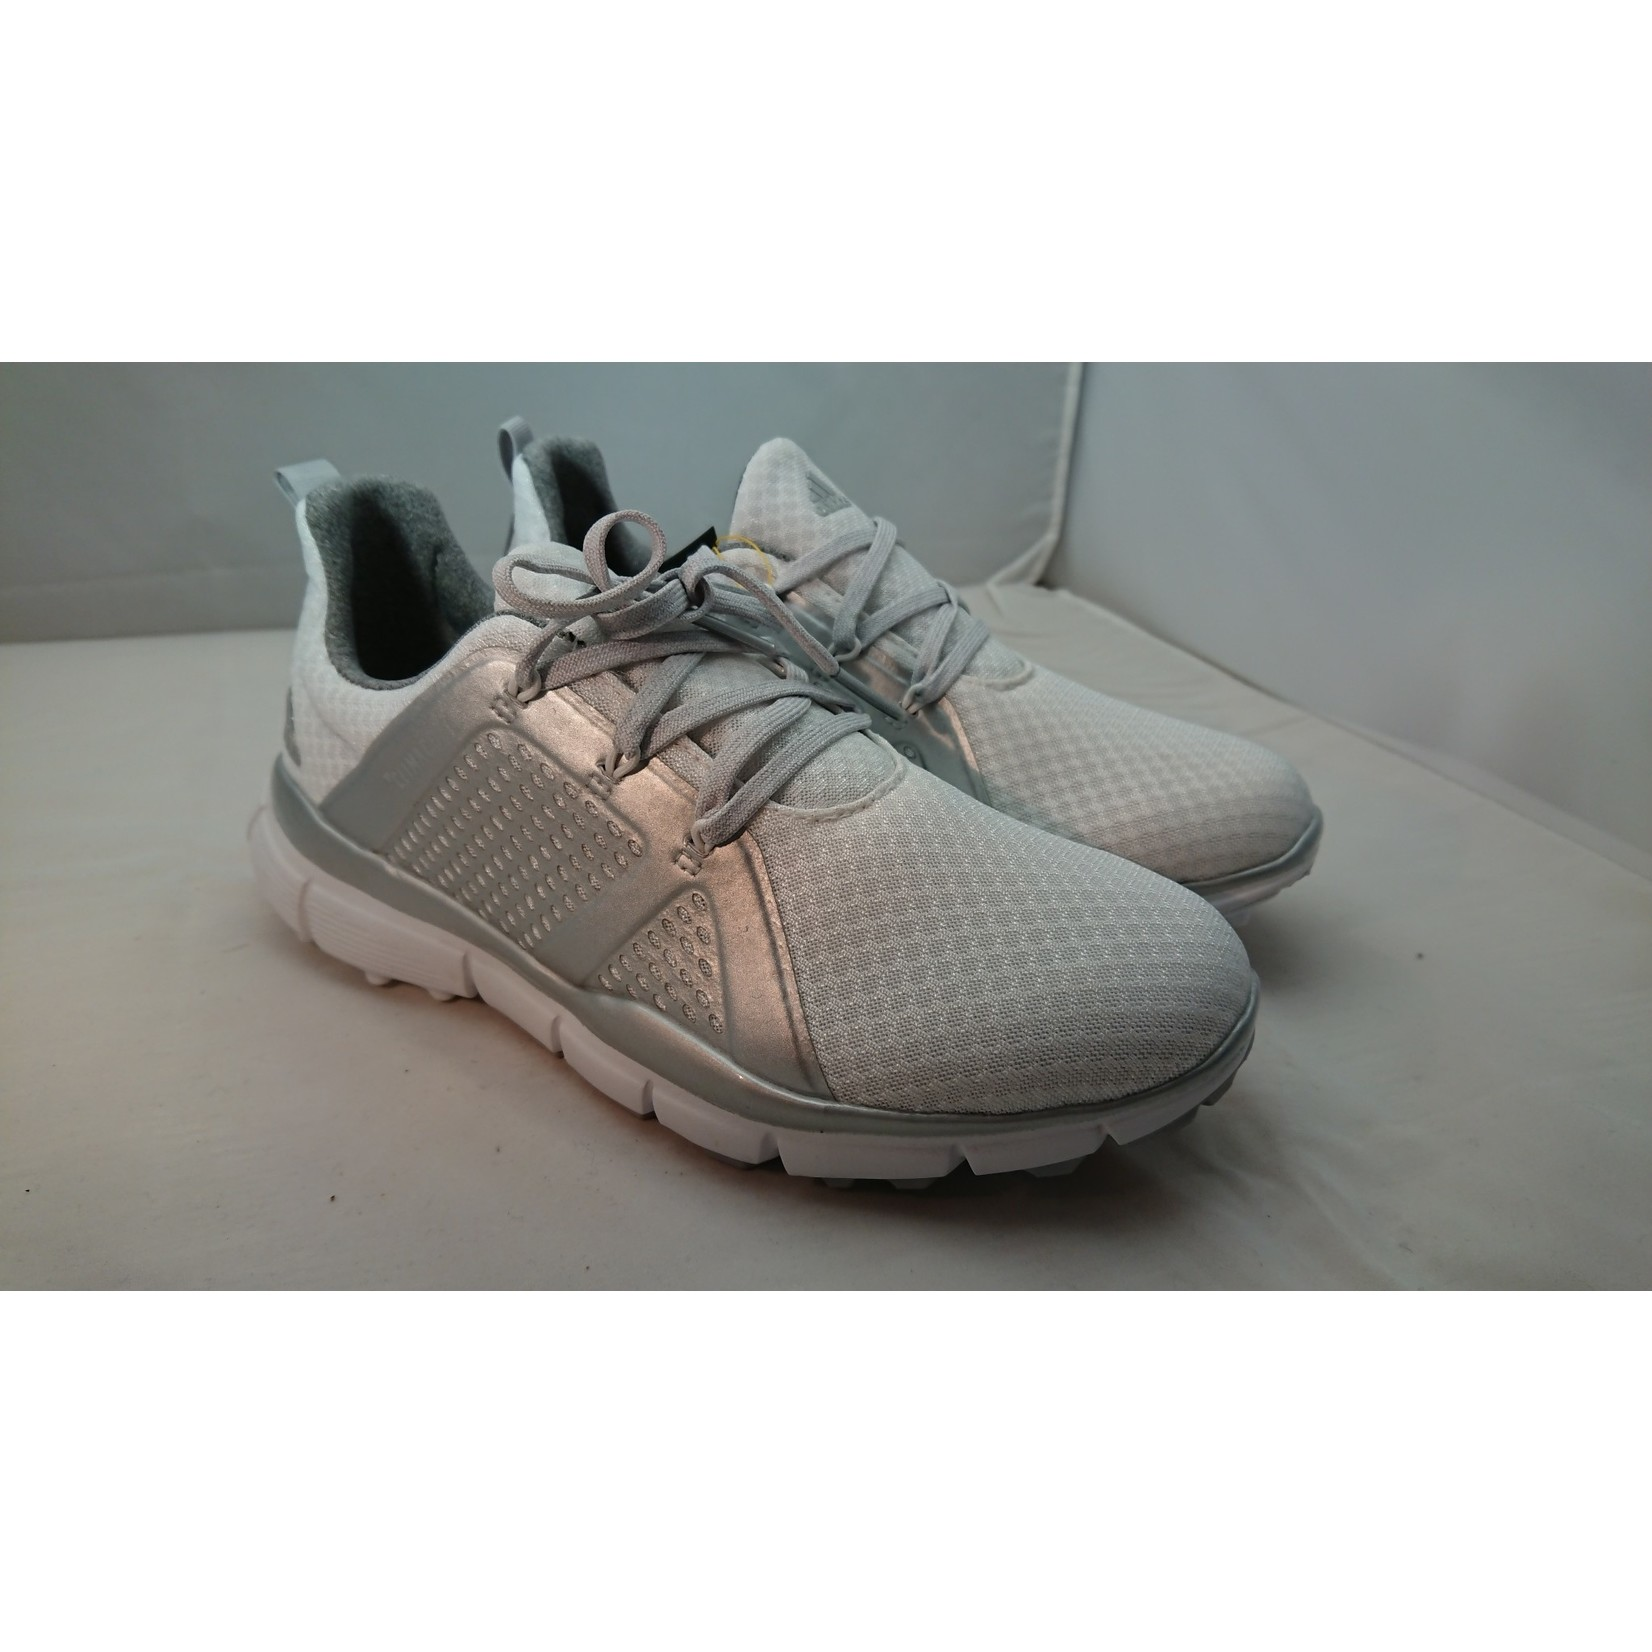 Adidas Adidas W Climacool Cage Wit/Silver 38